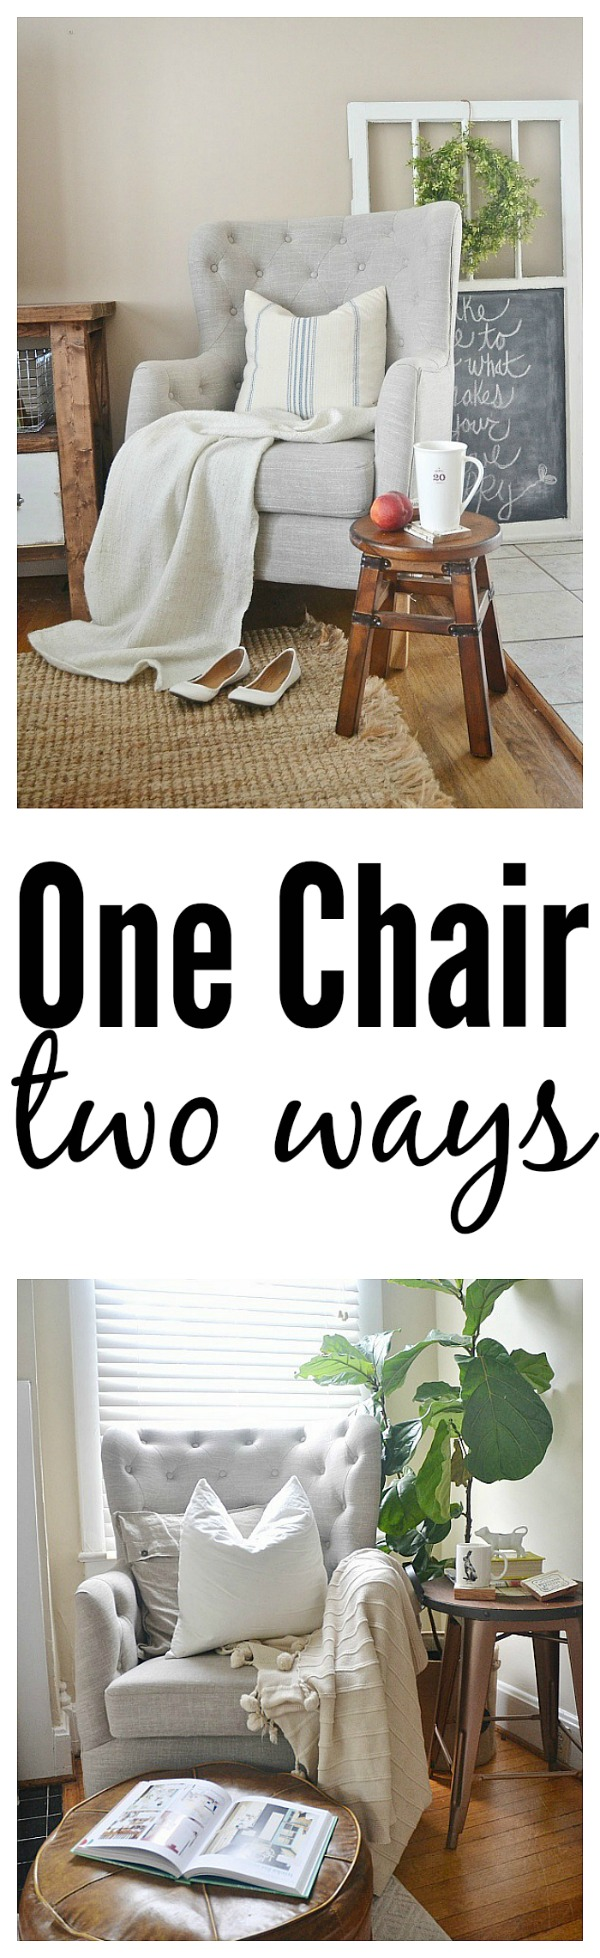 One chair two ways - TJ Maxx Tufted chair - lizmarieblog